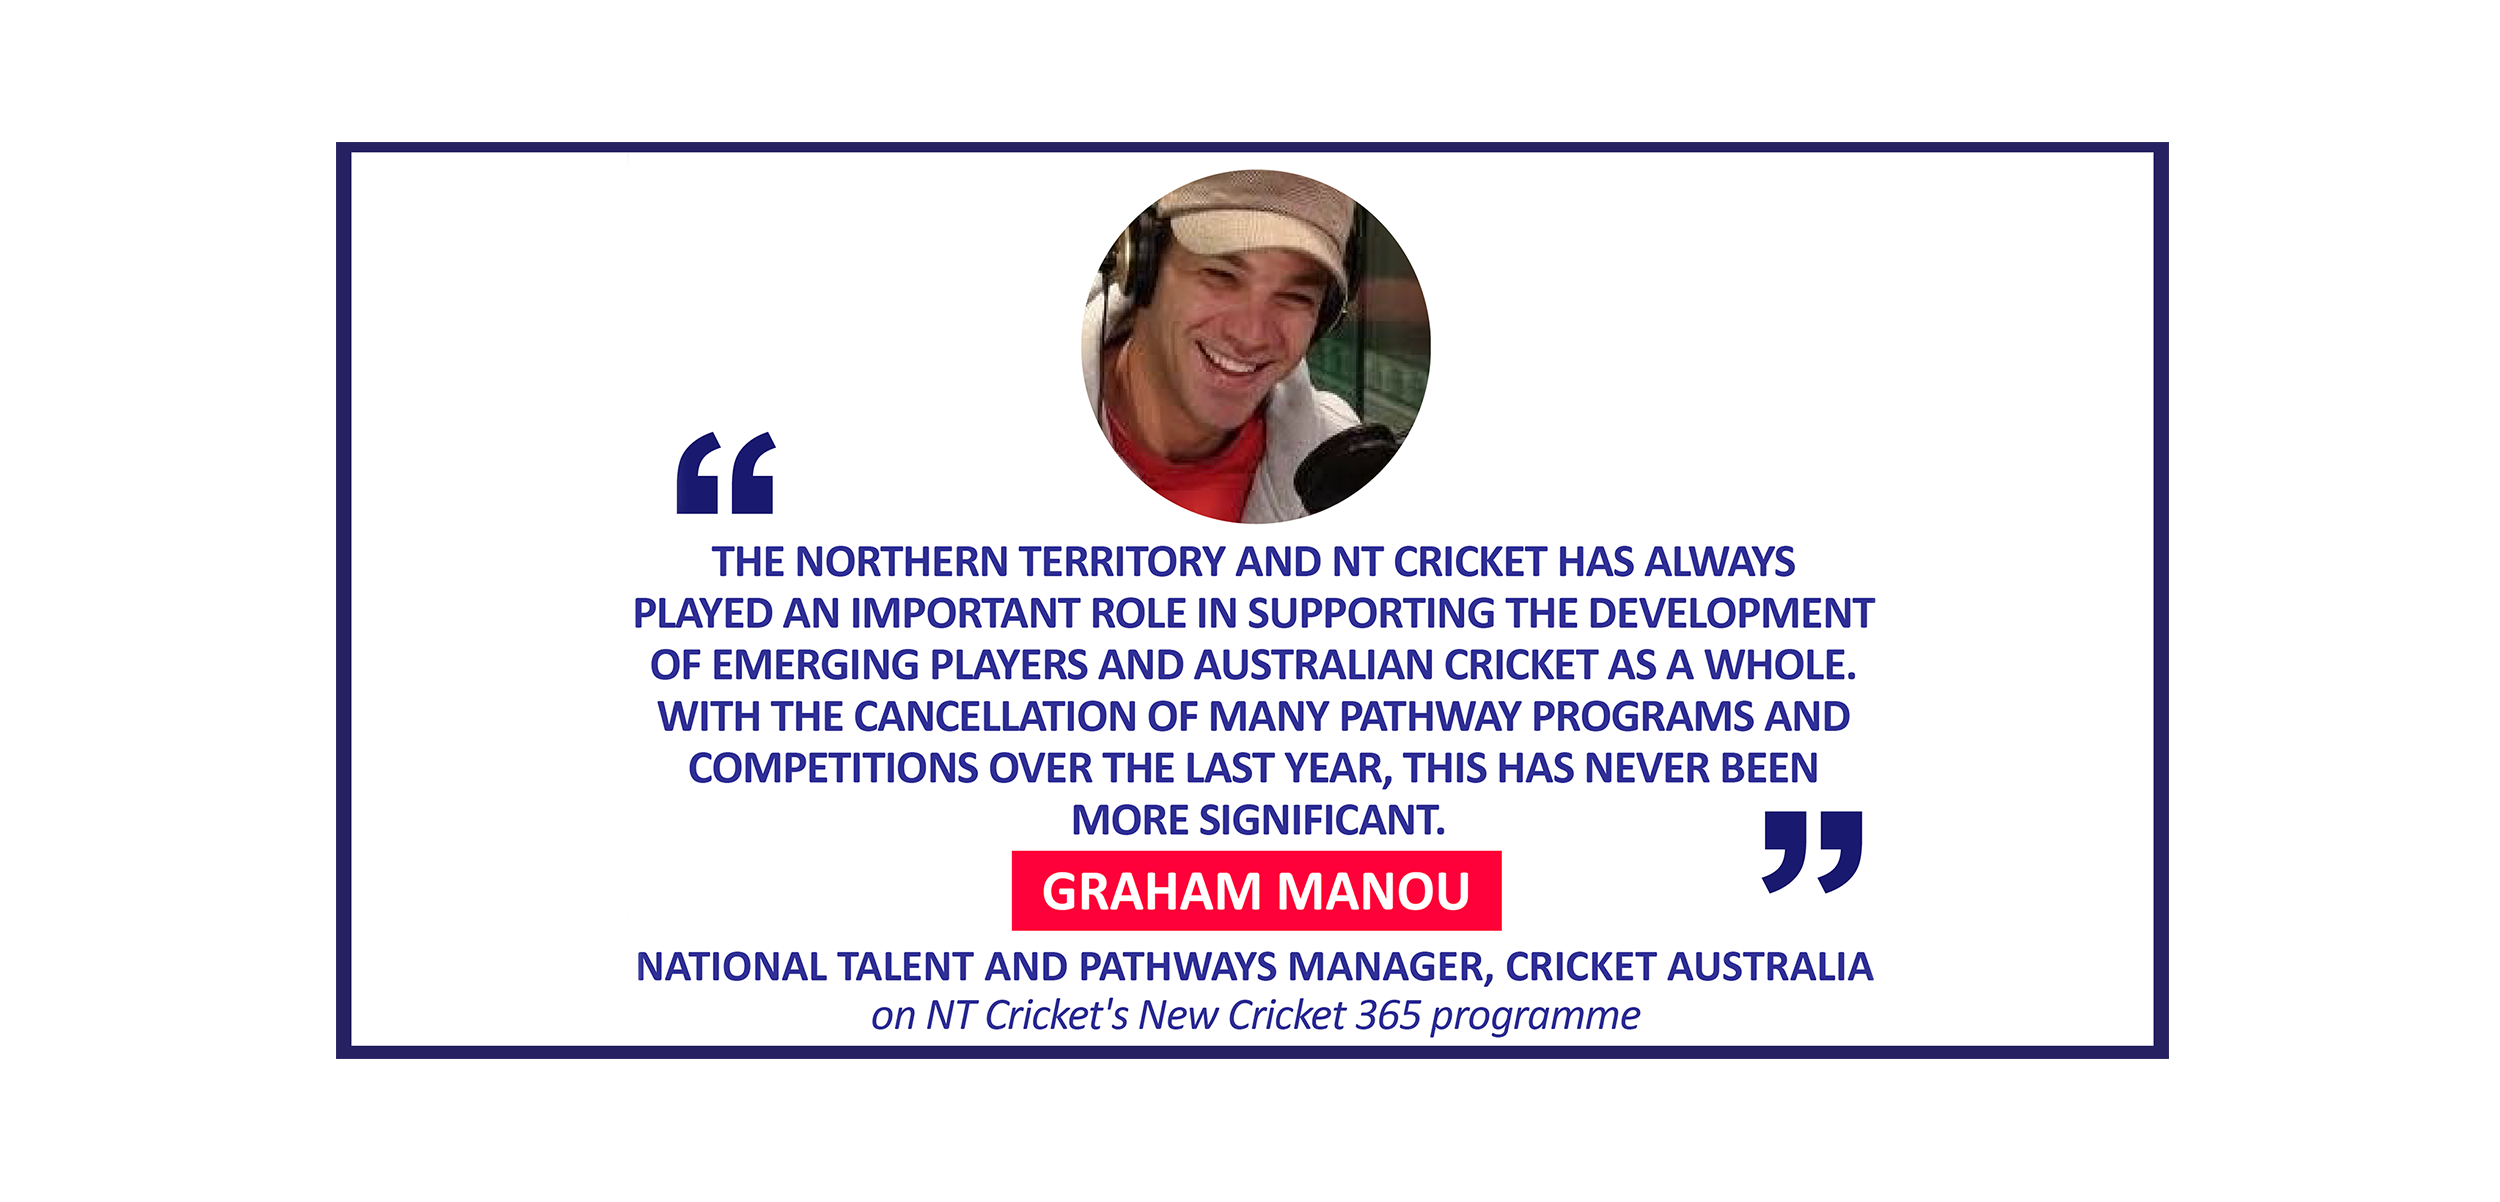 Graham Manou, National Talent and Pathways Manager, Cricket Australia on NT Cricket's New Cricket 365 programme